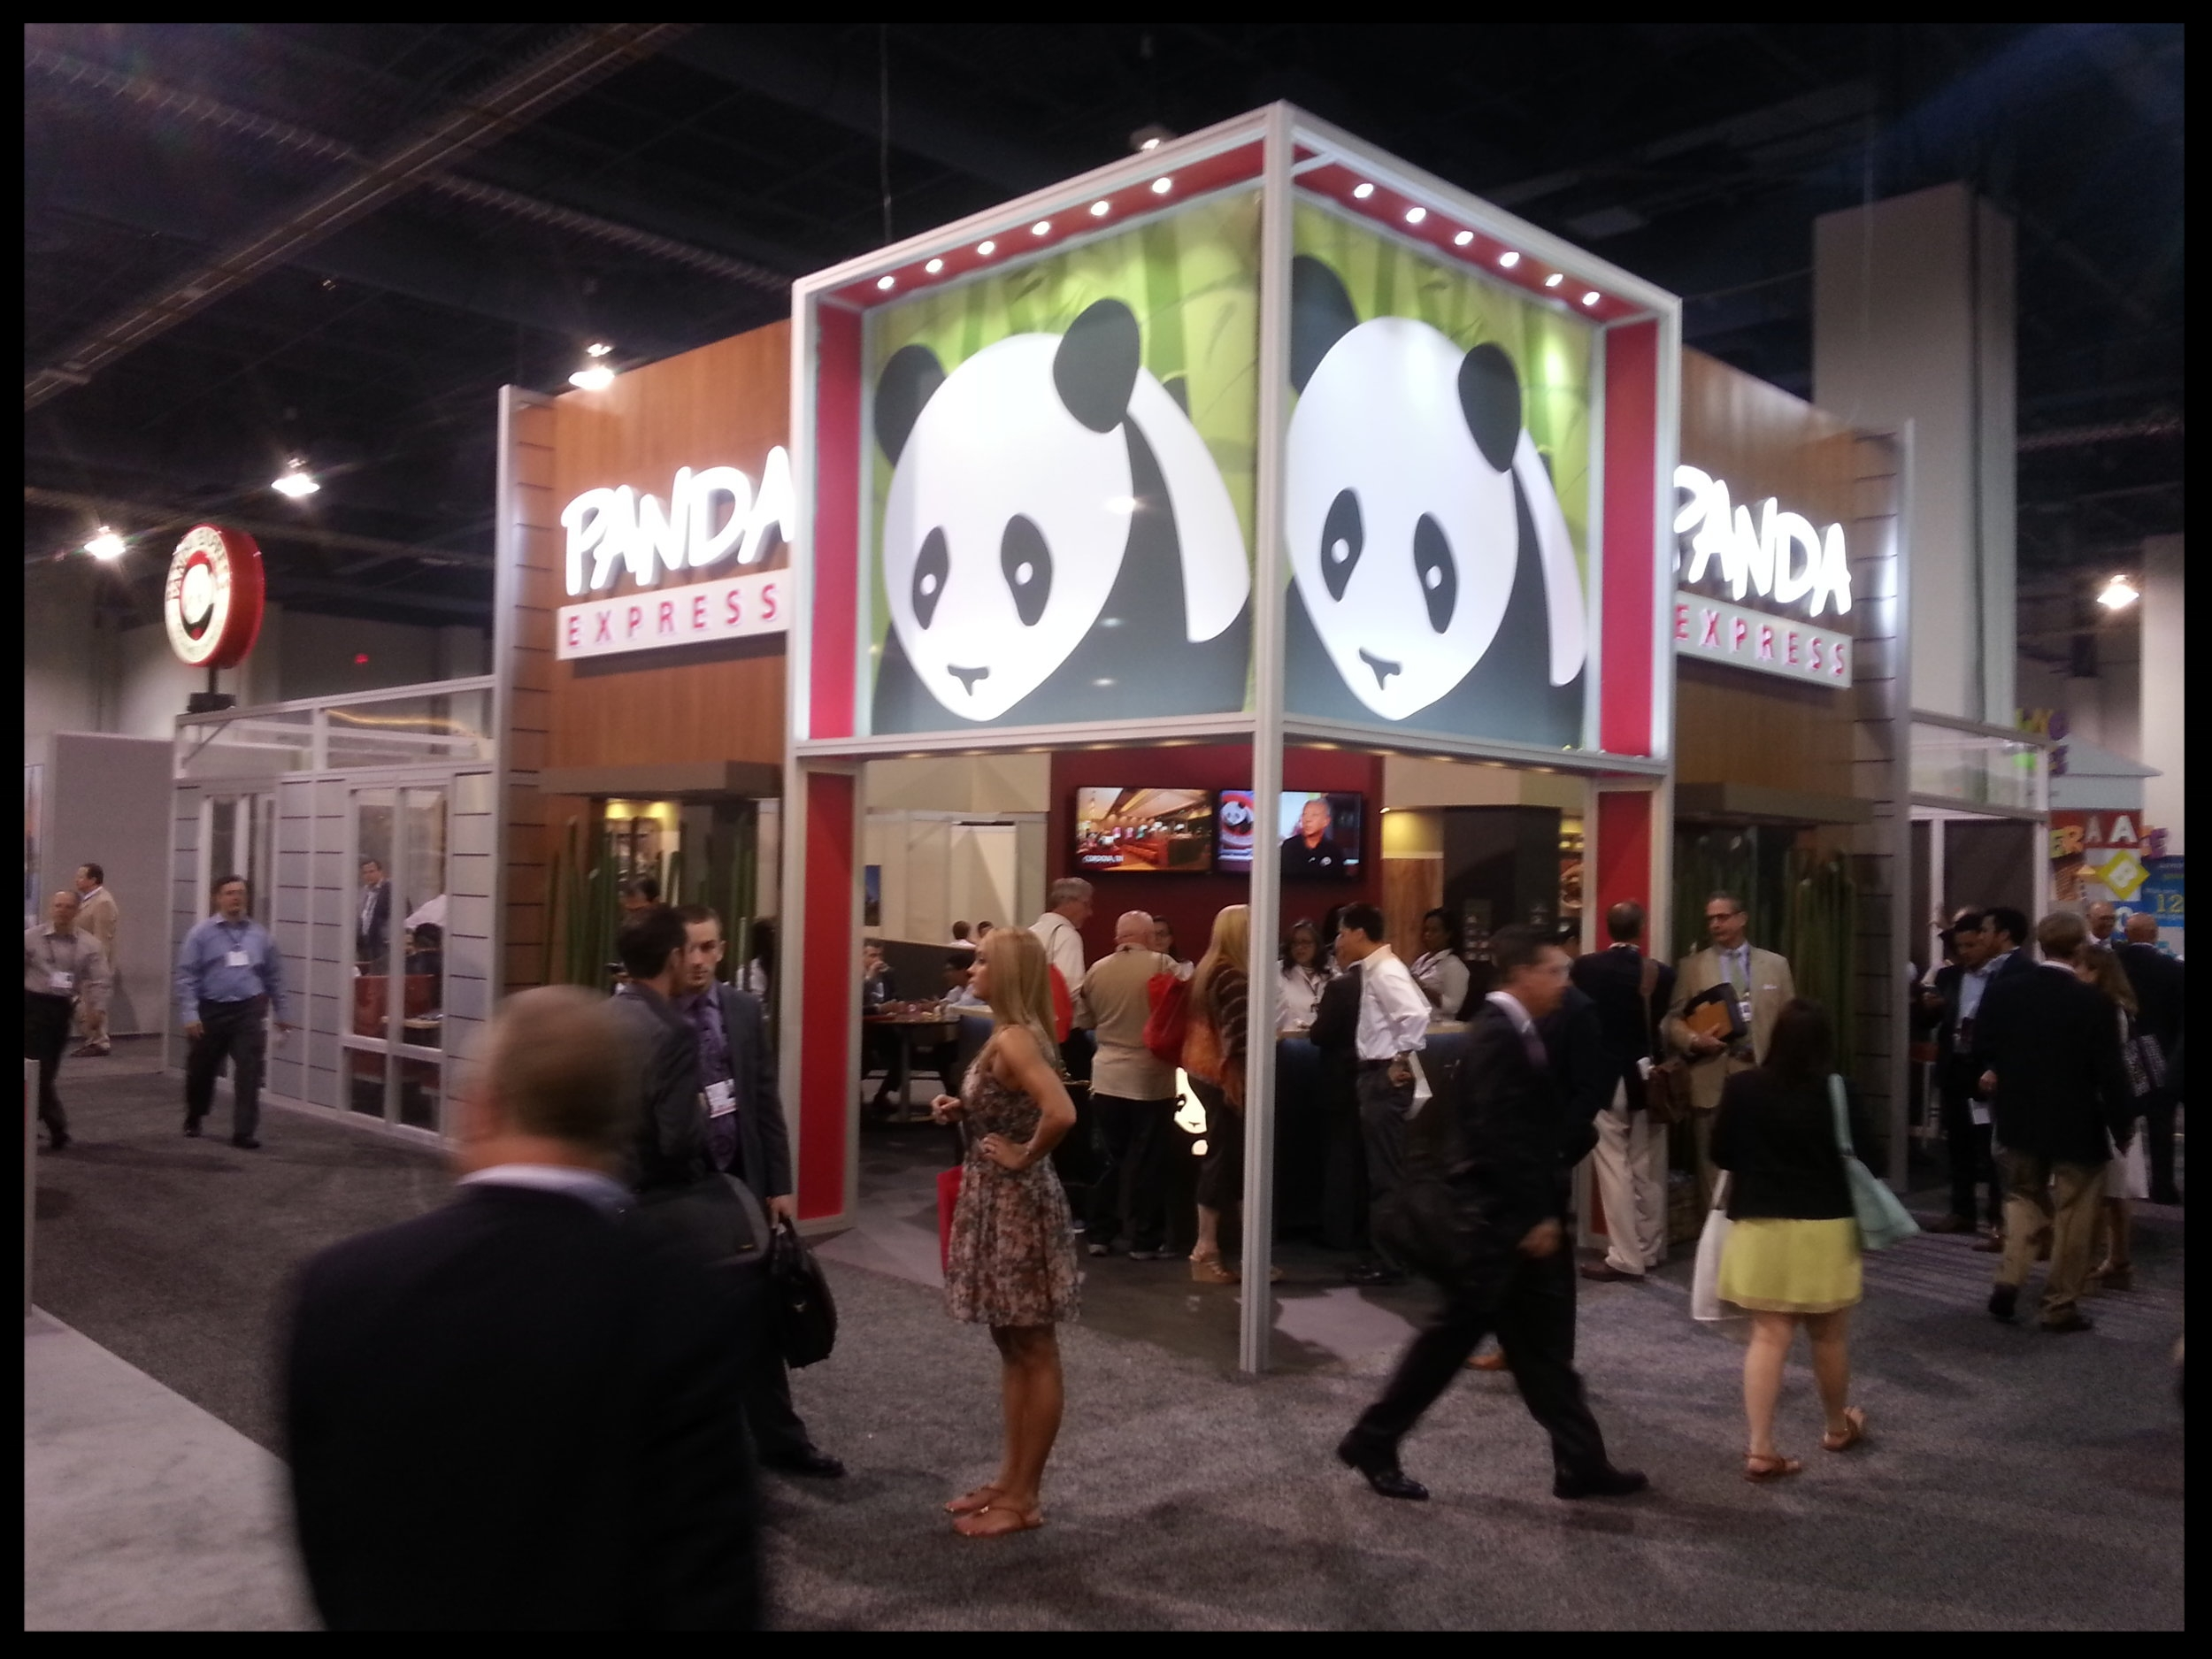 The Panda Express booth at the 2014 ICSC Las Vegas convention